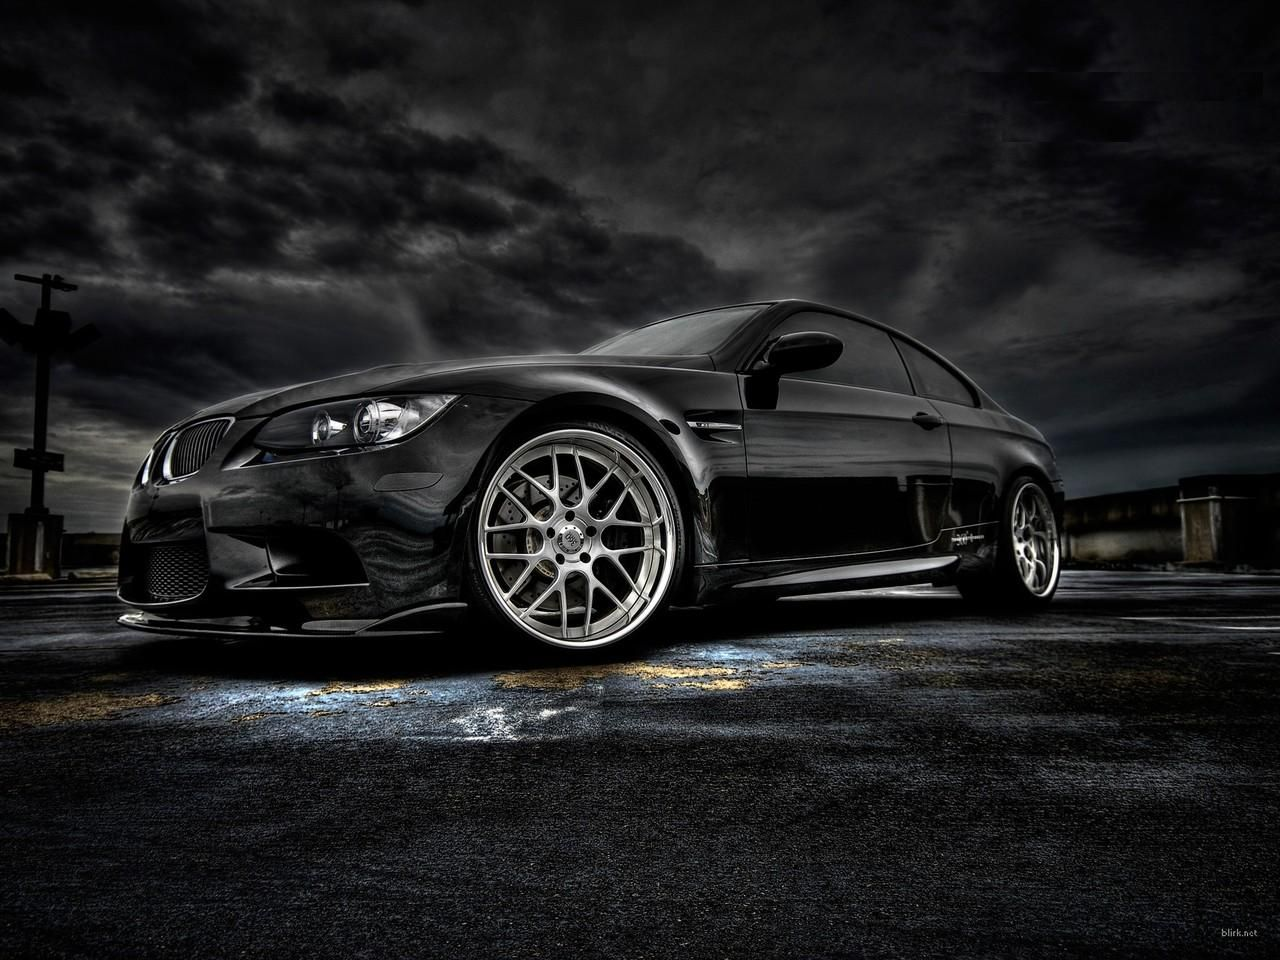 Pin by Shadow Walker on Stunning Cars. | Bmw, Bmw ...